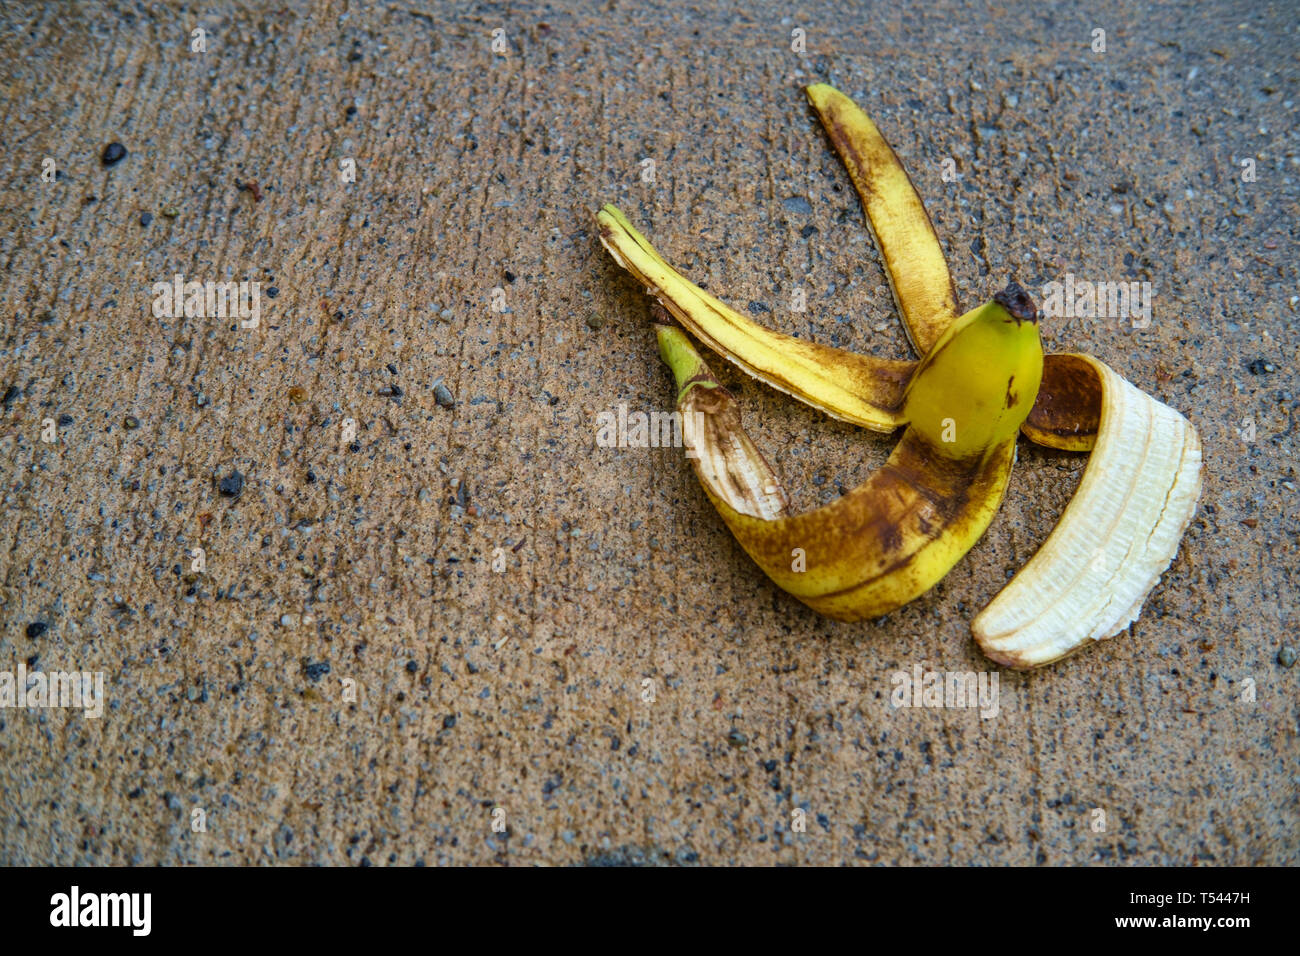 e001df1c4744f Slapstick slippery comedy banana peel laying on ground ready to make  someone slip and fall -